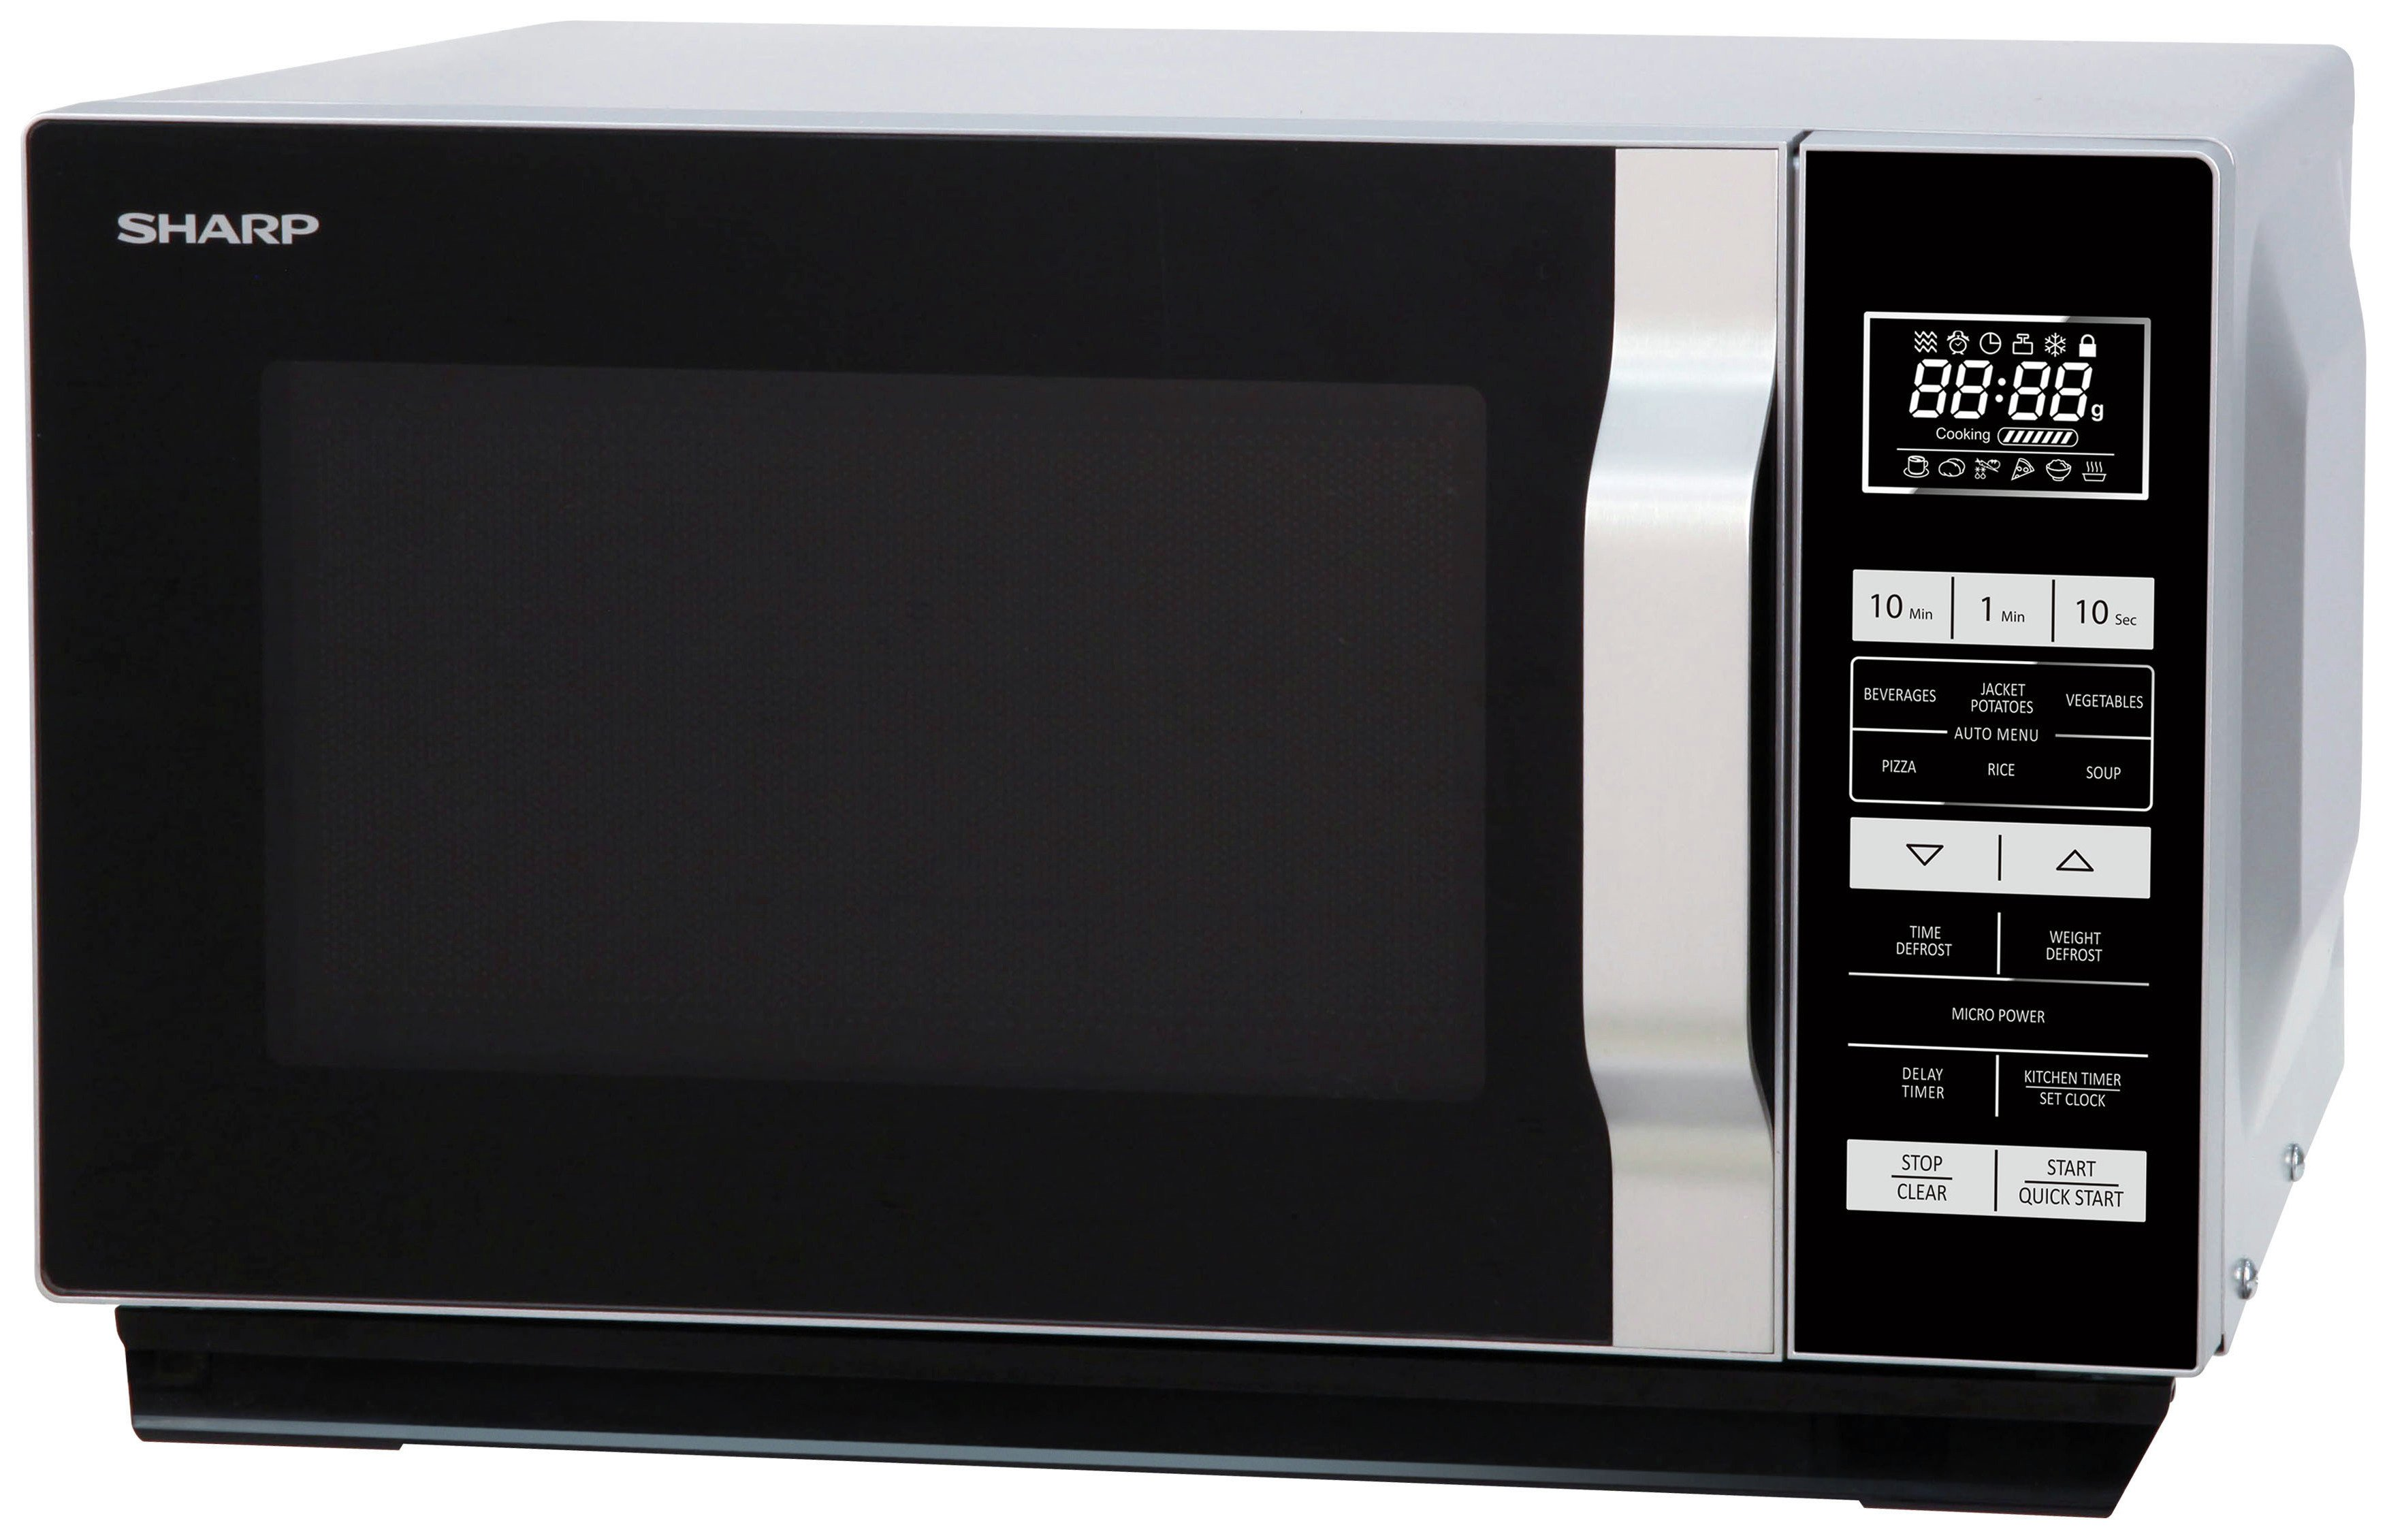 Sharp - Touch Microwave - R360SLM Standard -Silver